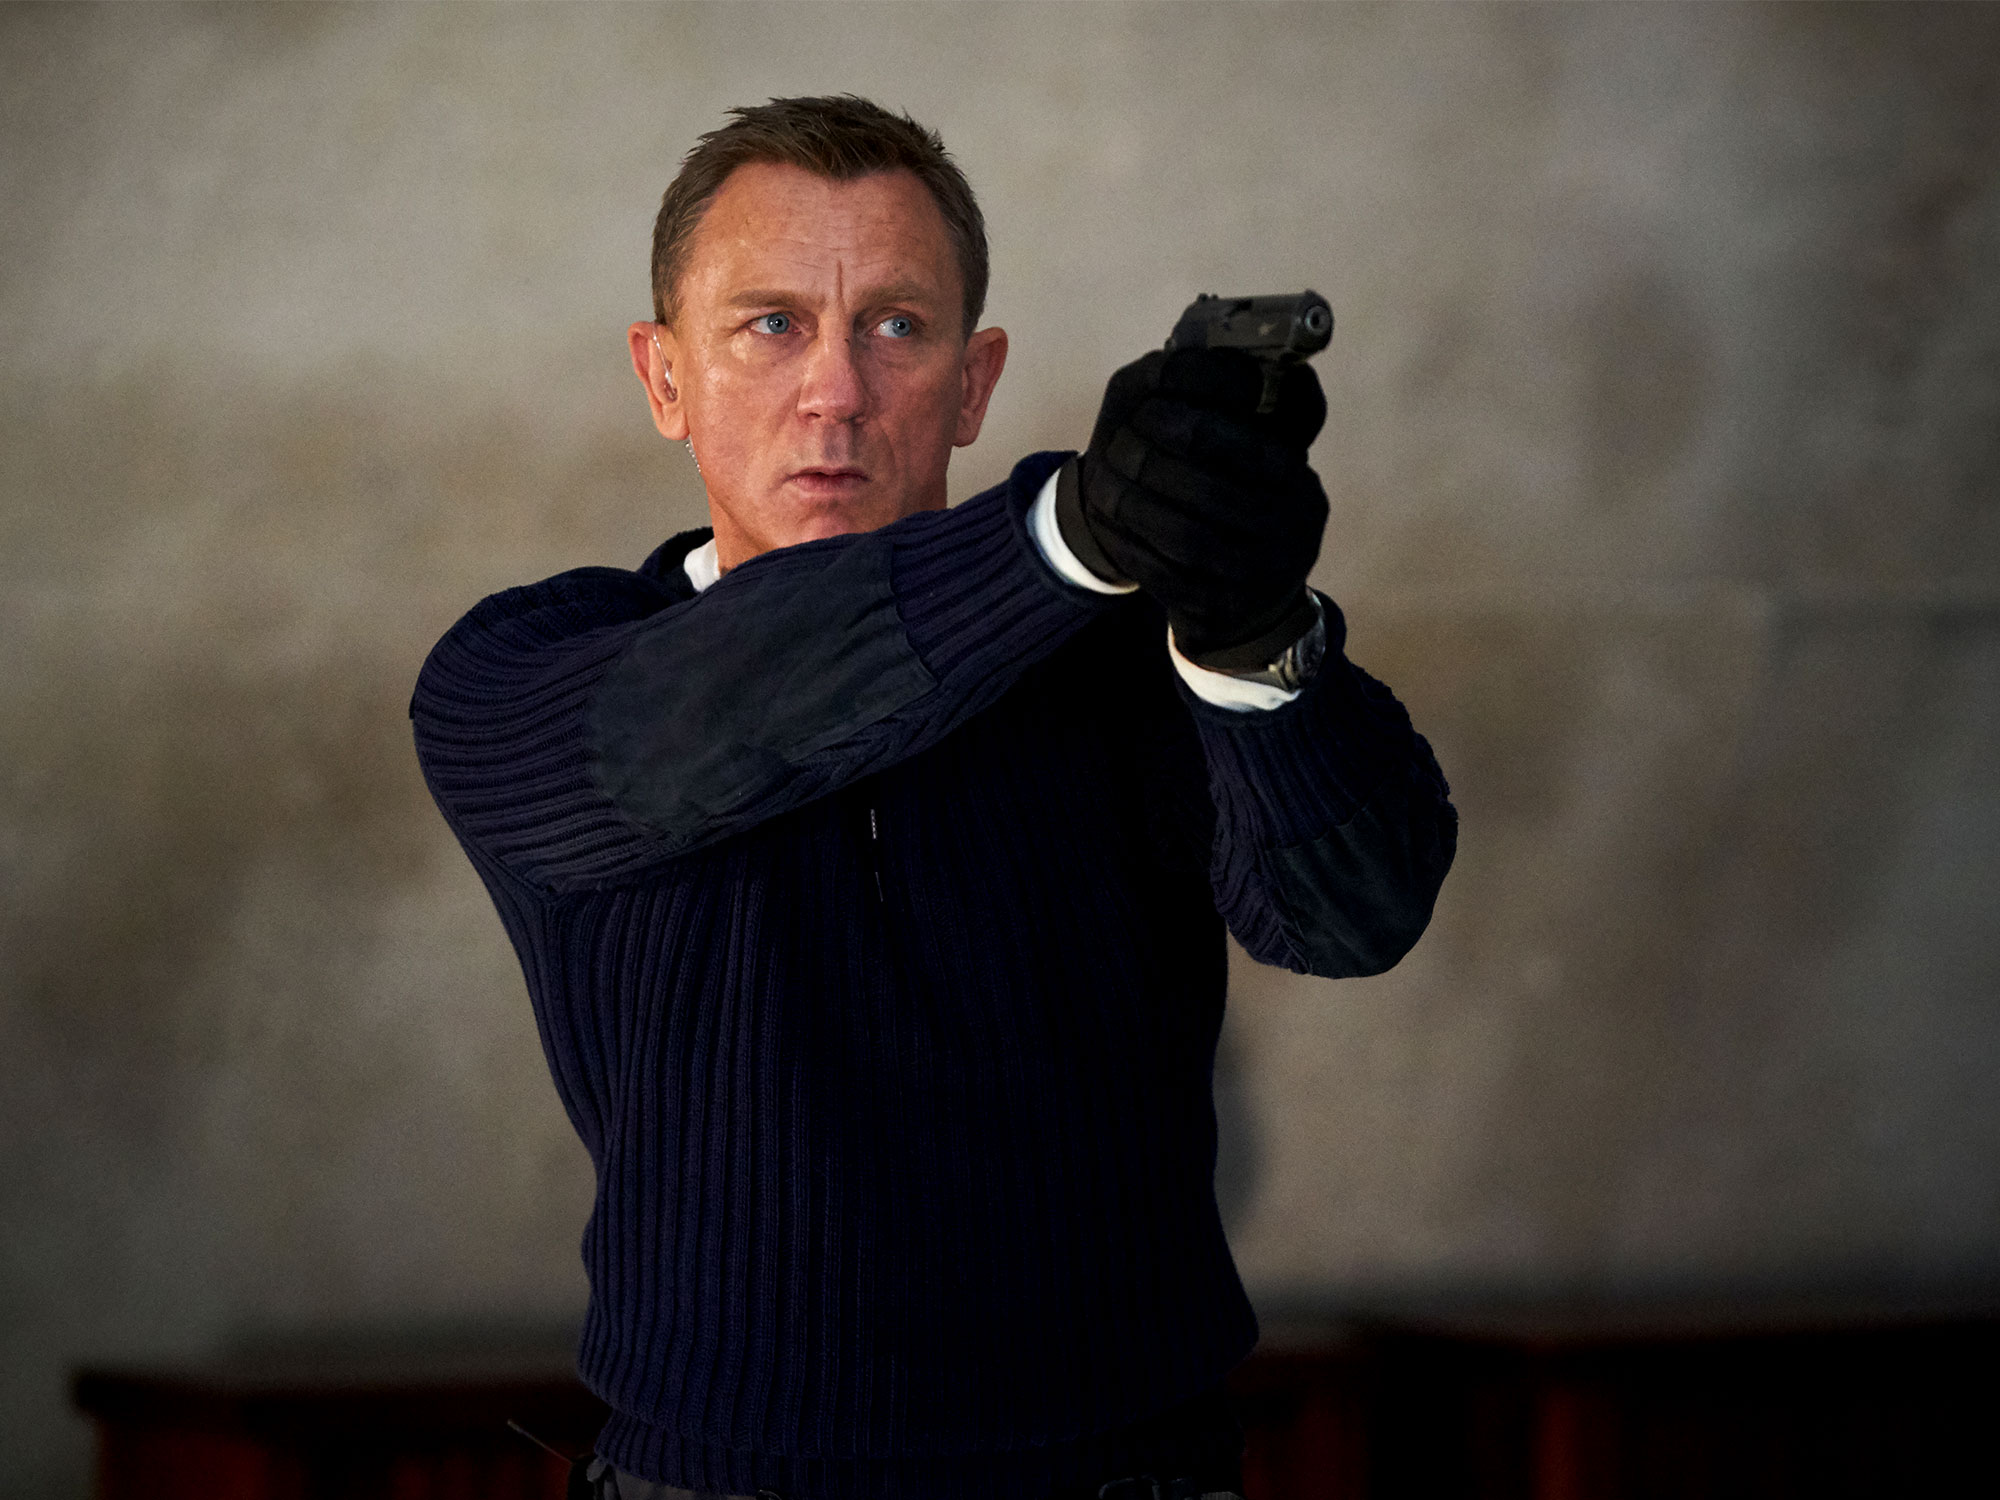 007 returns in the first No Time to ...